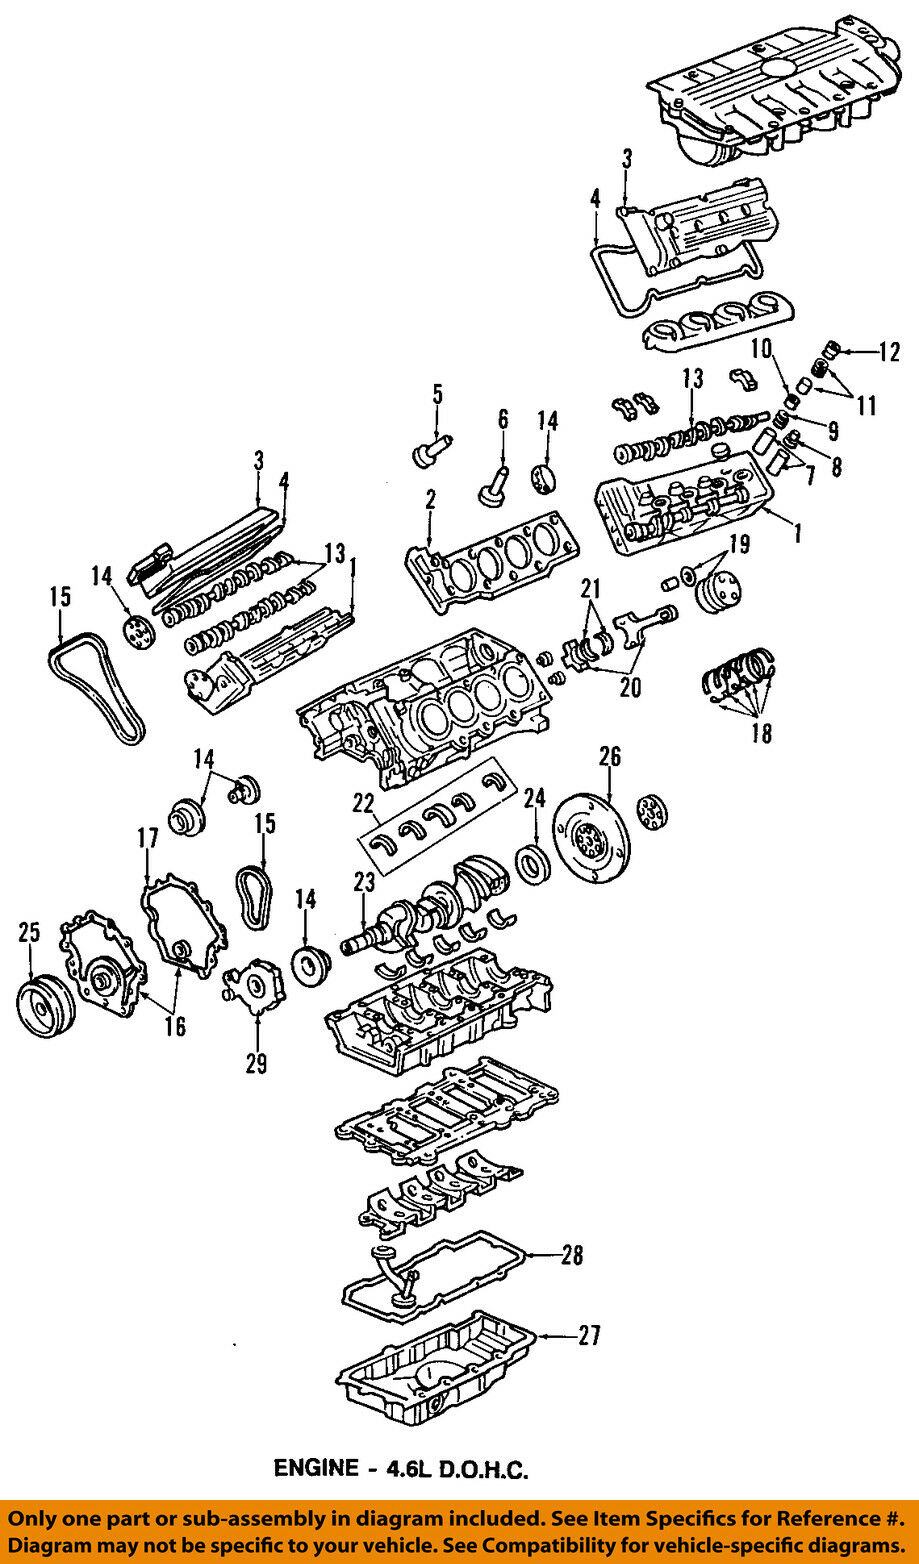 Genuine Gm 12603135 46l V8 Aluminum Engine Oil Pan Ebay Ford 4 6l Diagram Norton Secured Powered By Verisign